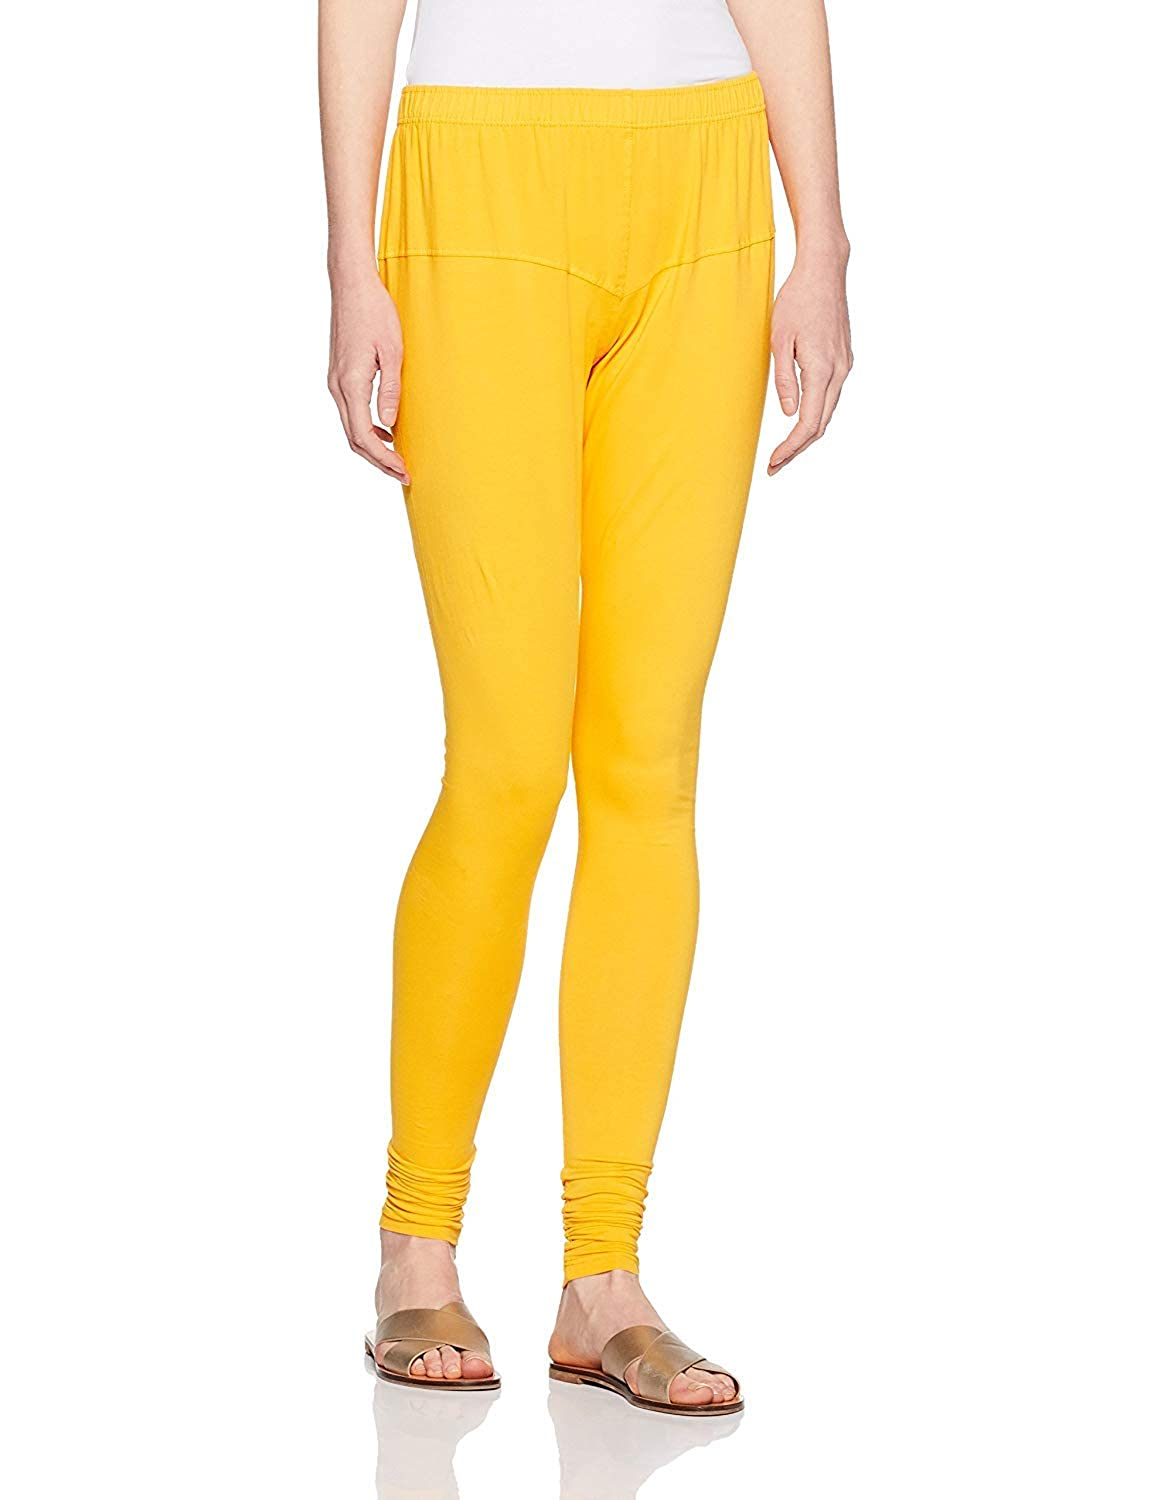 LYRA Women's Yellow Churidar Leggings